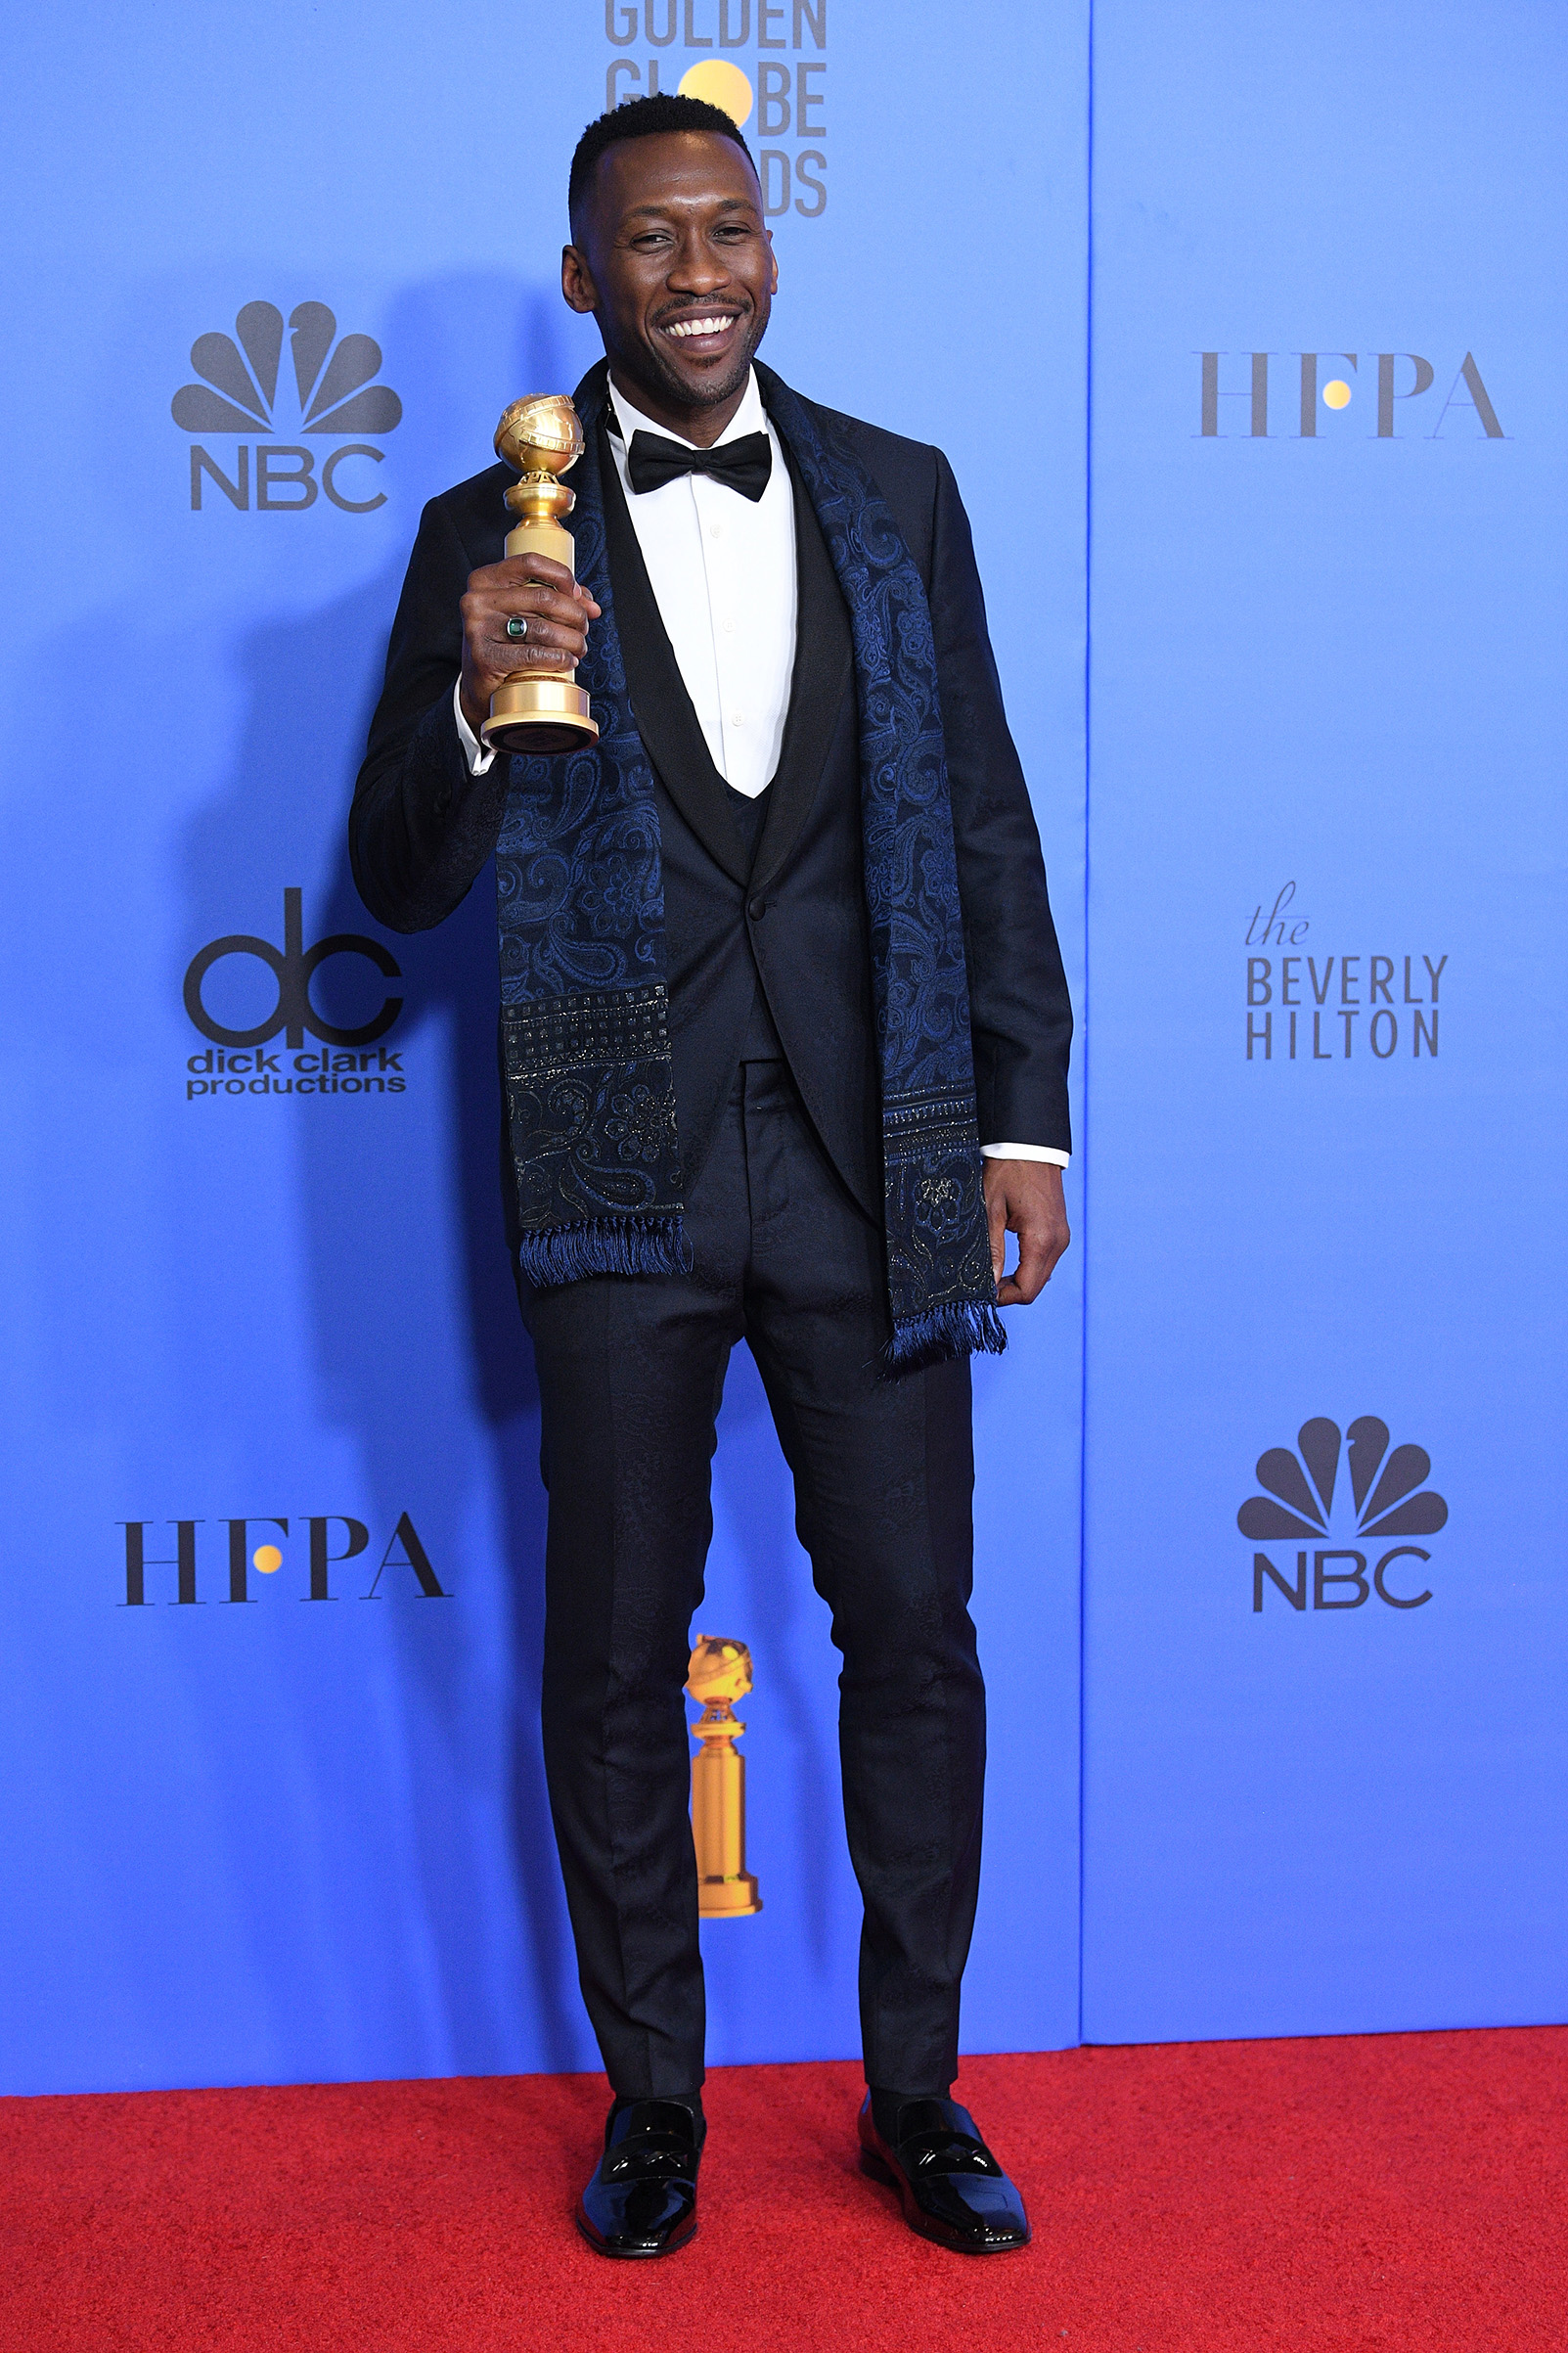 BEVERLY HILLS, CALIFORNIA - JANUARY 06: Best Actor in a Supporting Role in any Motion Picture for 'The Green Book' winner Mahershala Ali poses in the press room during the 75th Annual Golden Globe Awards at The Beverly Hilton Hotel on January 06, 2019 in Beverly Hills, California. (Photo by Daniele Venturelli/WireImage)